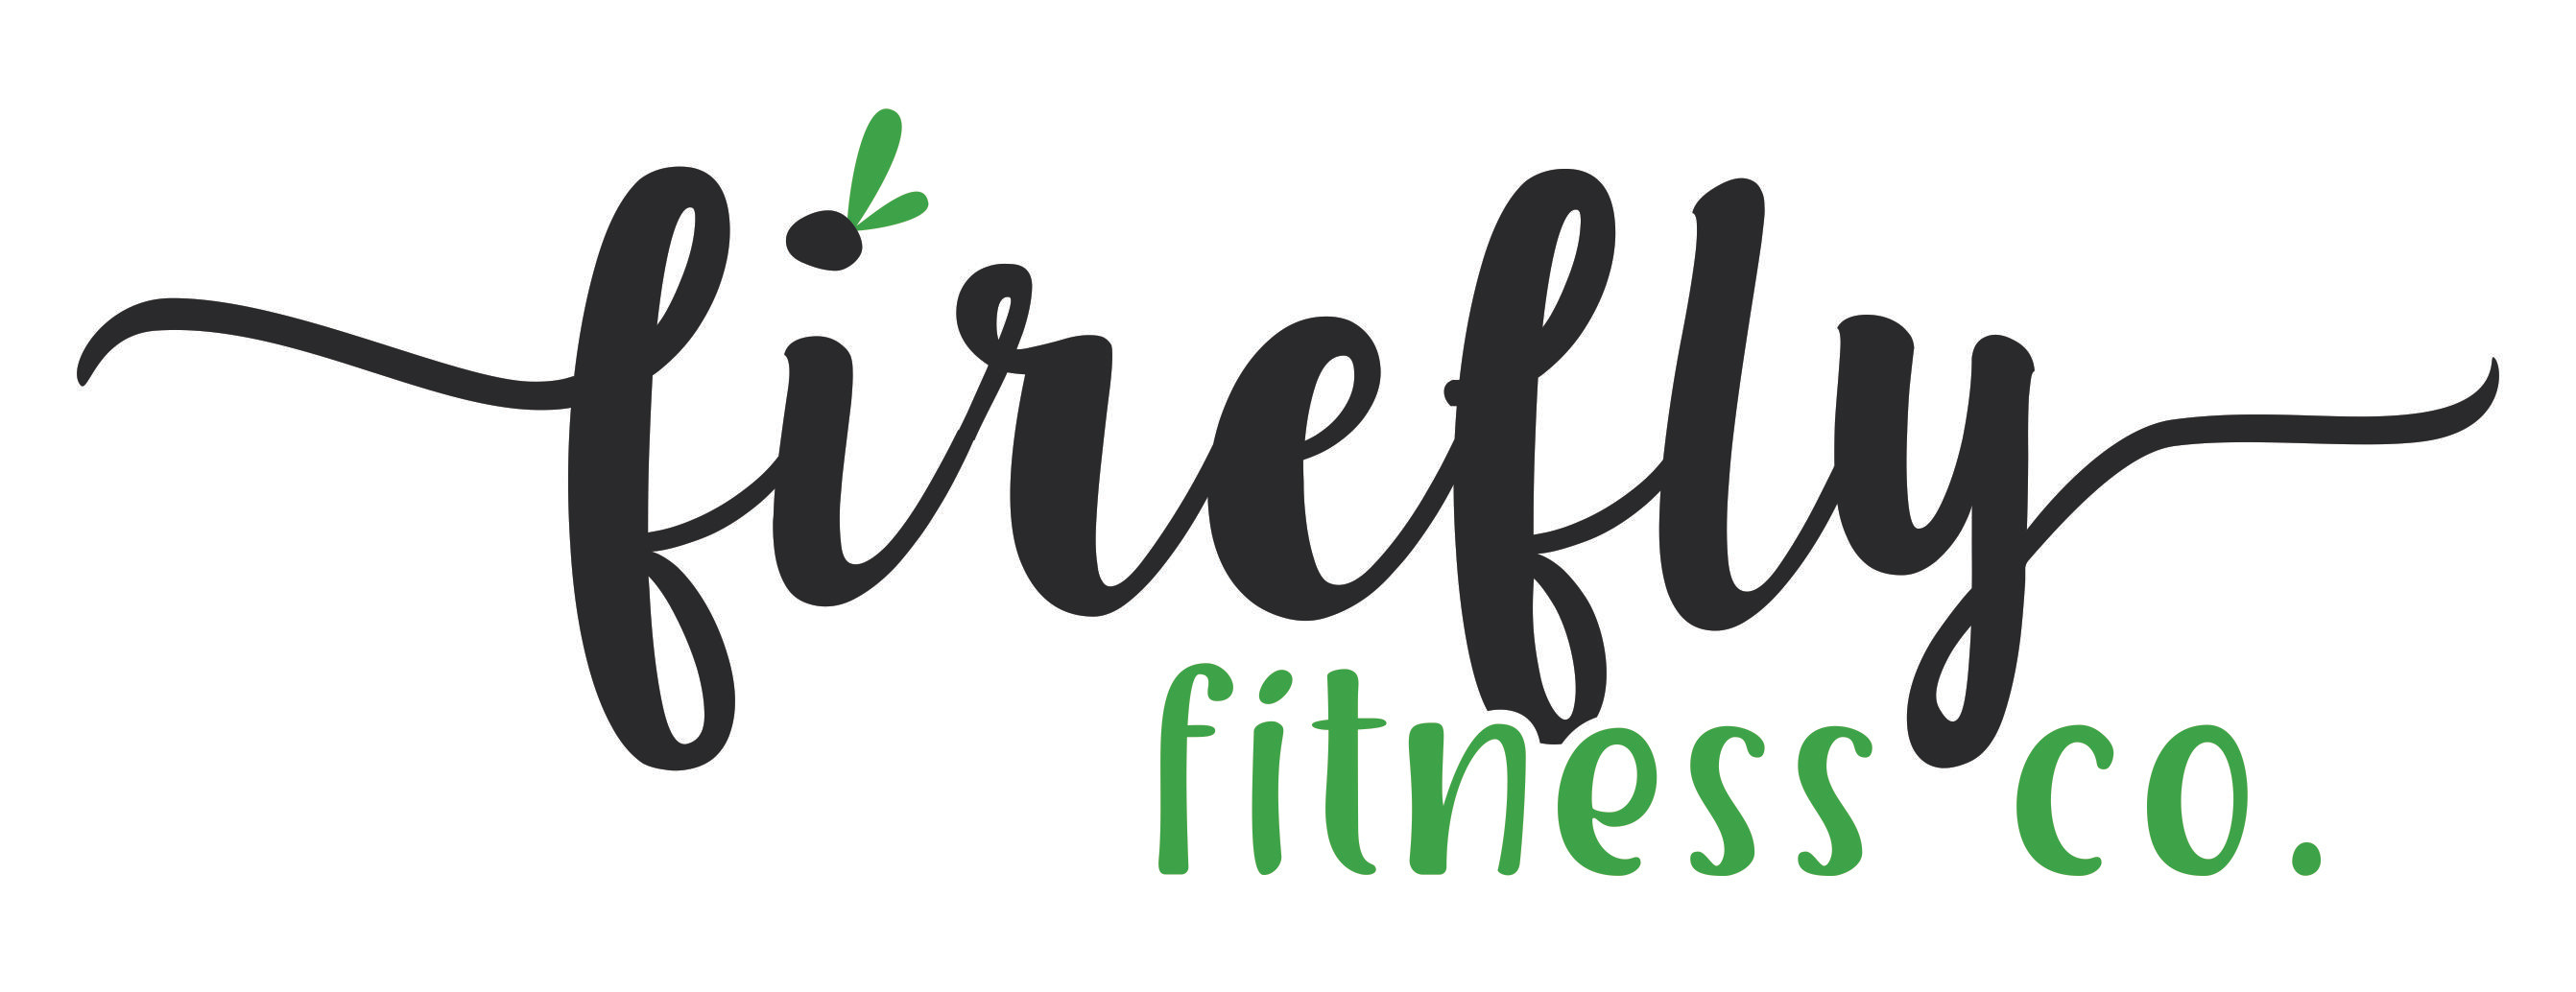 Firefly Fitness Co final logo - word